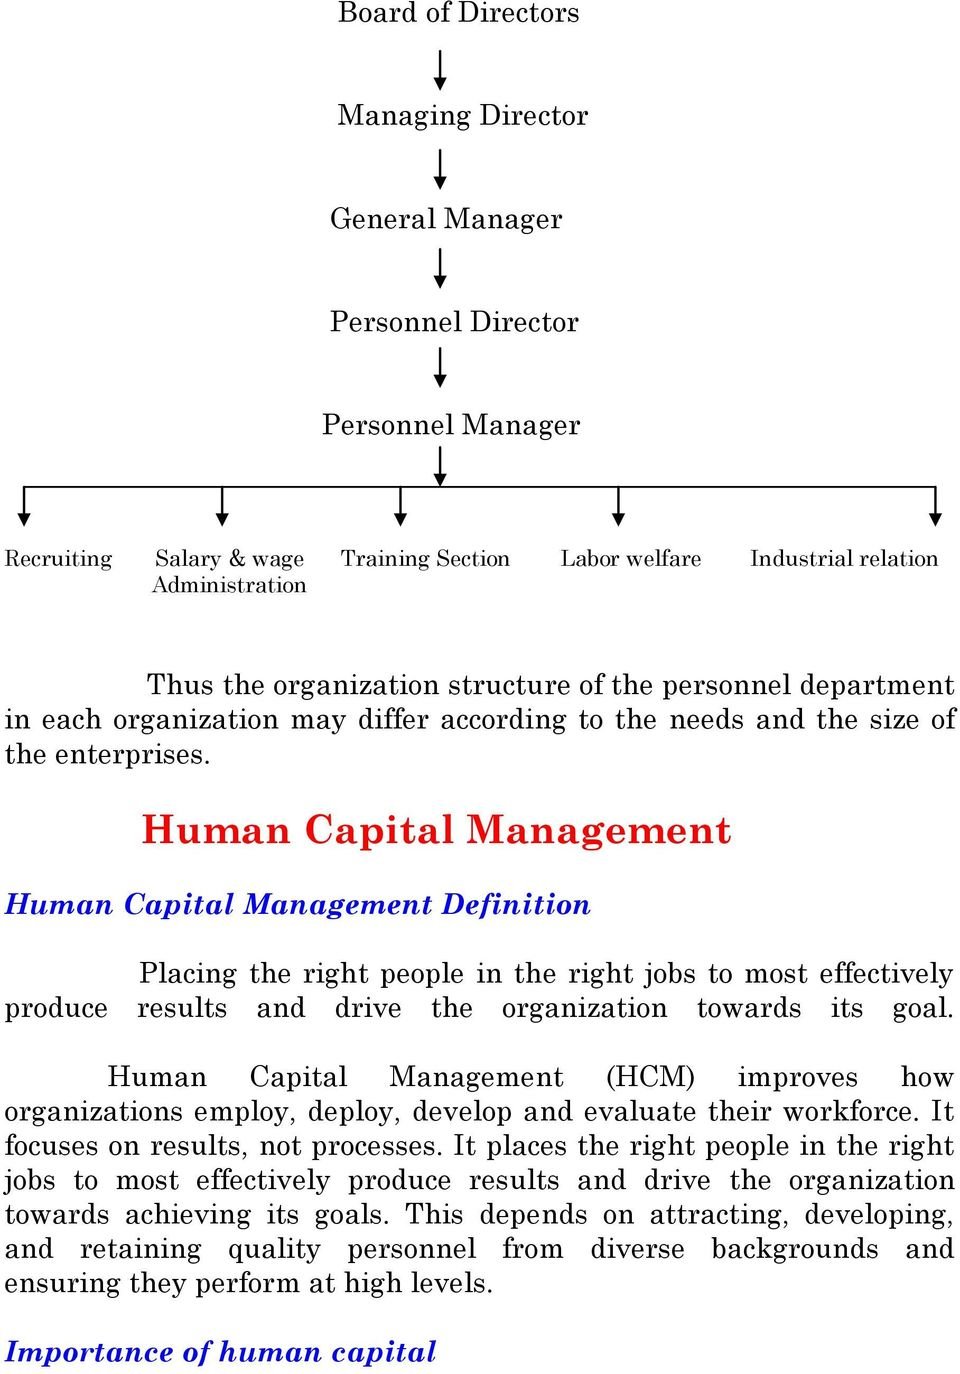 Human Capital Management Human Capital Management Definition Placing the right people in the right jobs to most effectively produce results and drive the organization towards its goal.